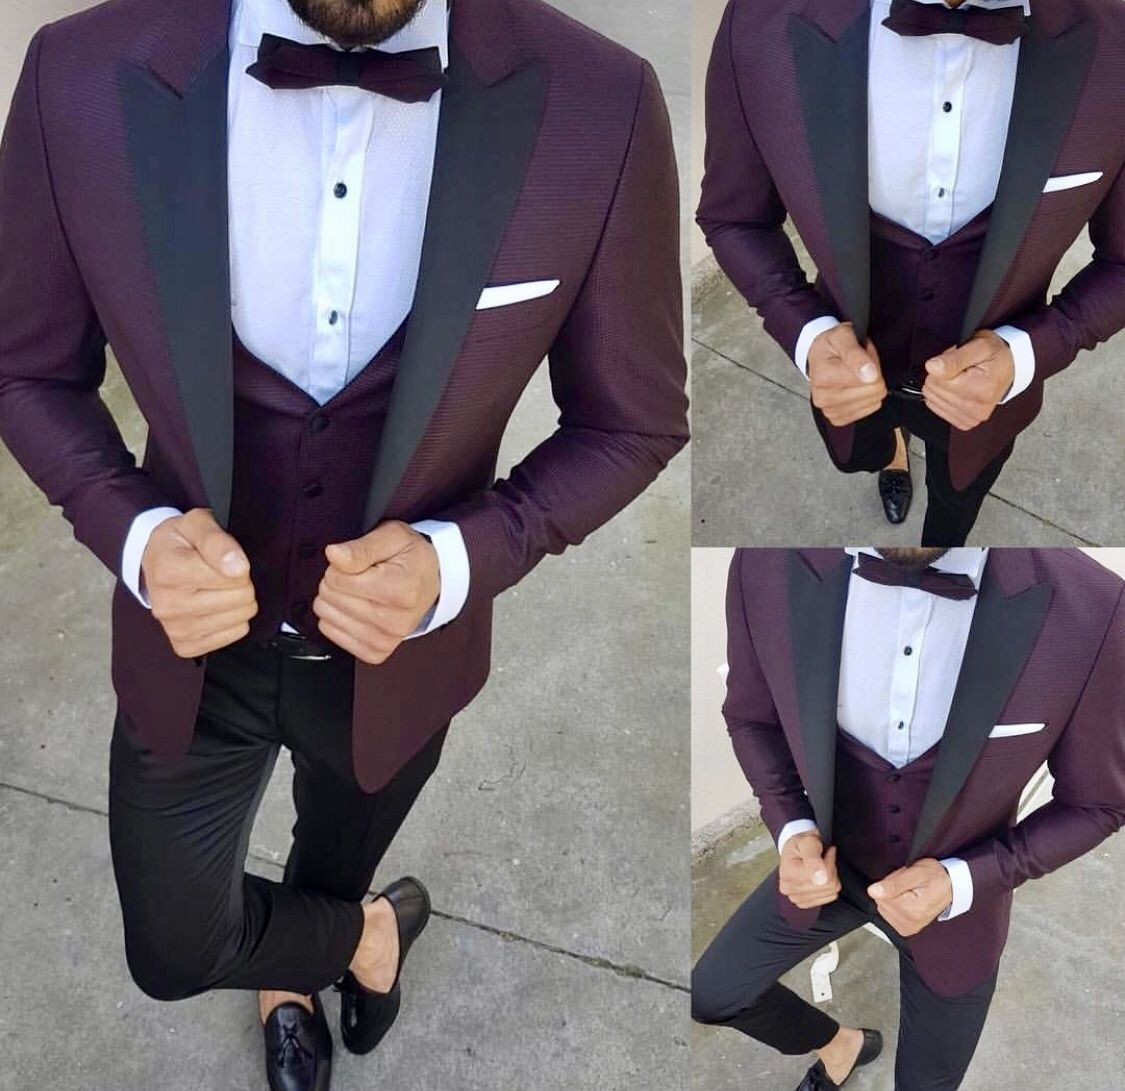 Long Island Custom Suits Long Island Custom Shirts Long Island Wedding Suits Prom Suits For Men Prom Suits Wedding Suits Men